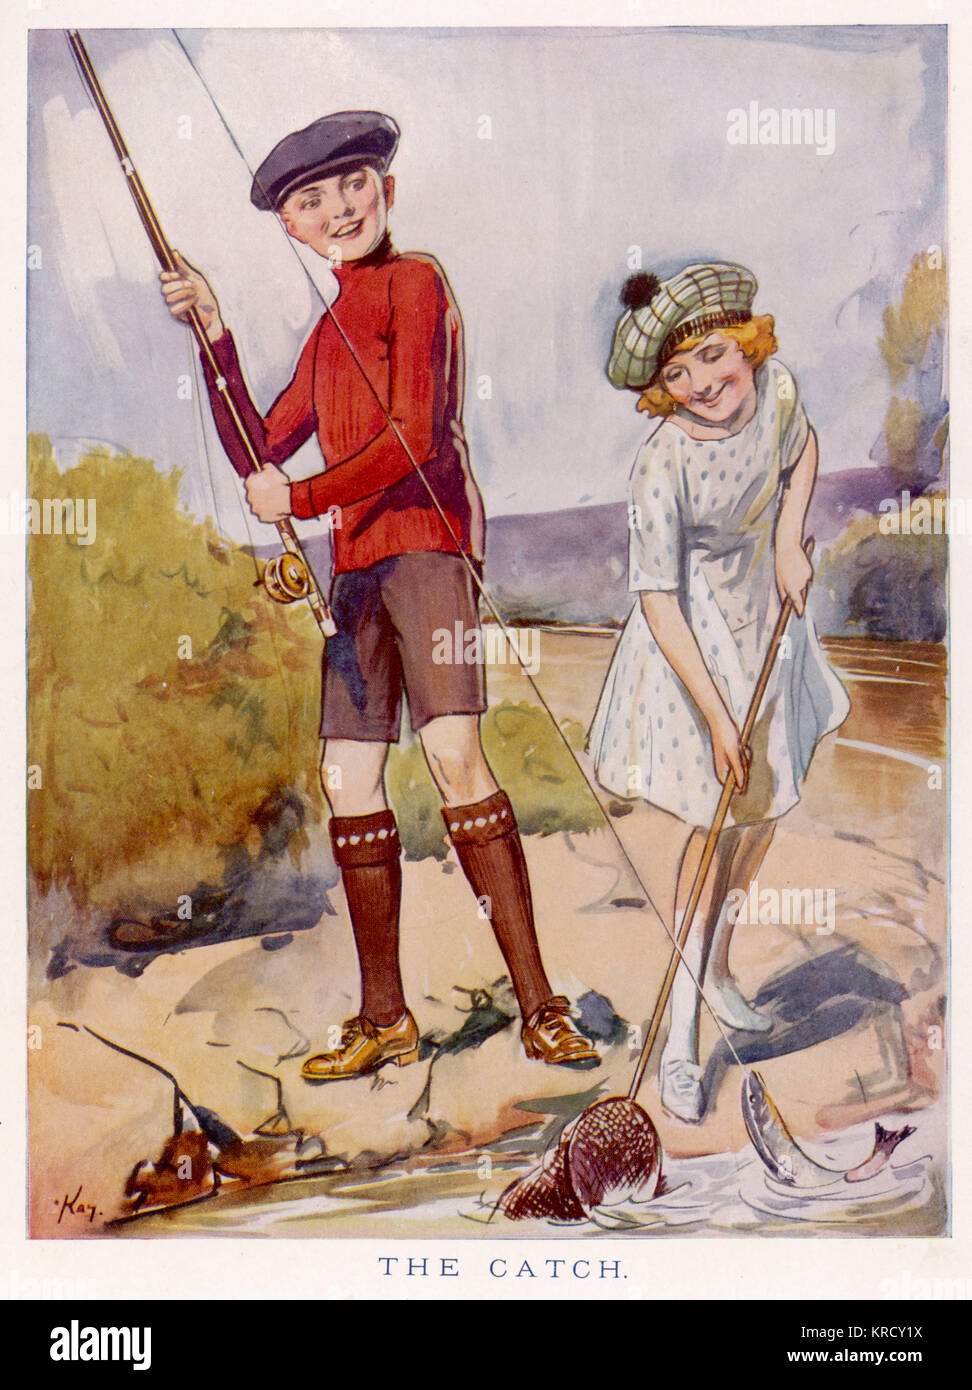 A boy catches a fish from the  river and his girl companion  helps to net it.        Date: 1923 - Stock Image